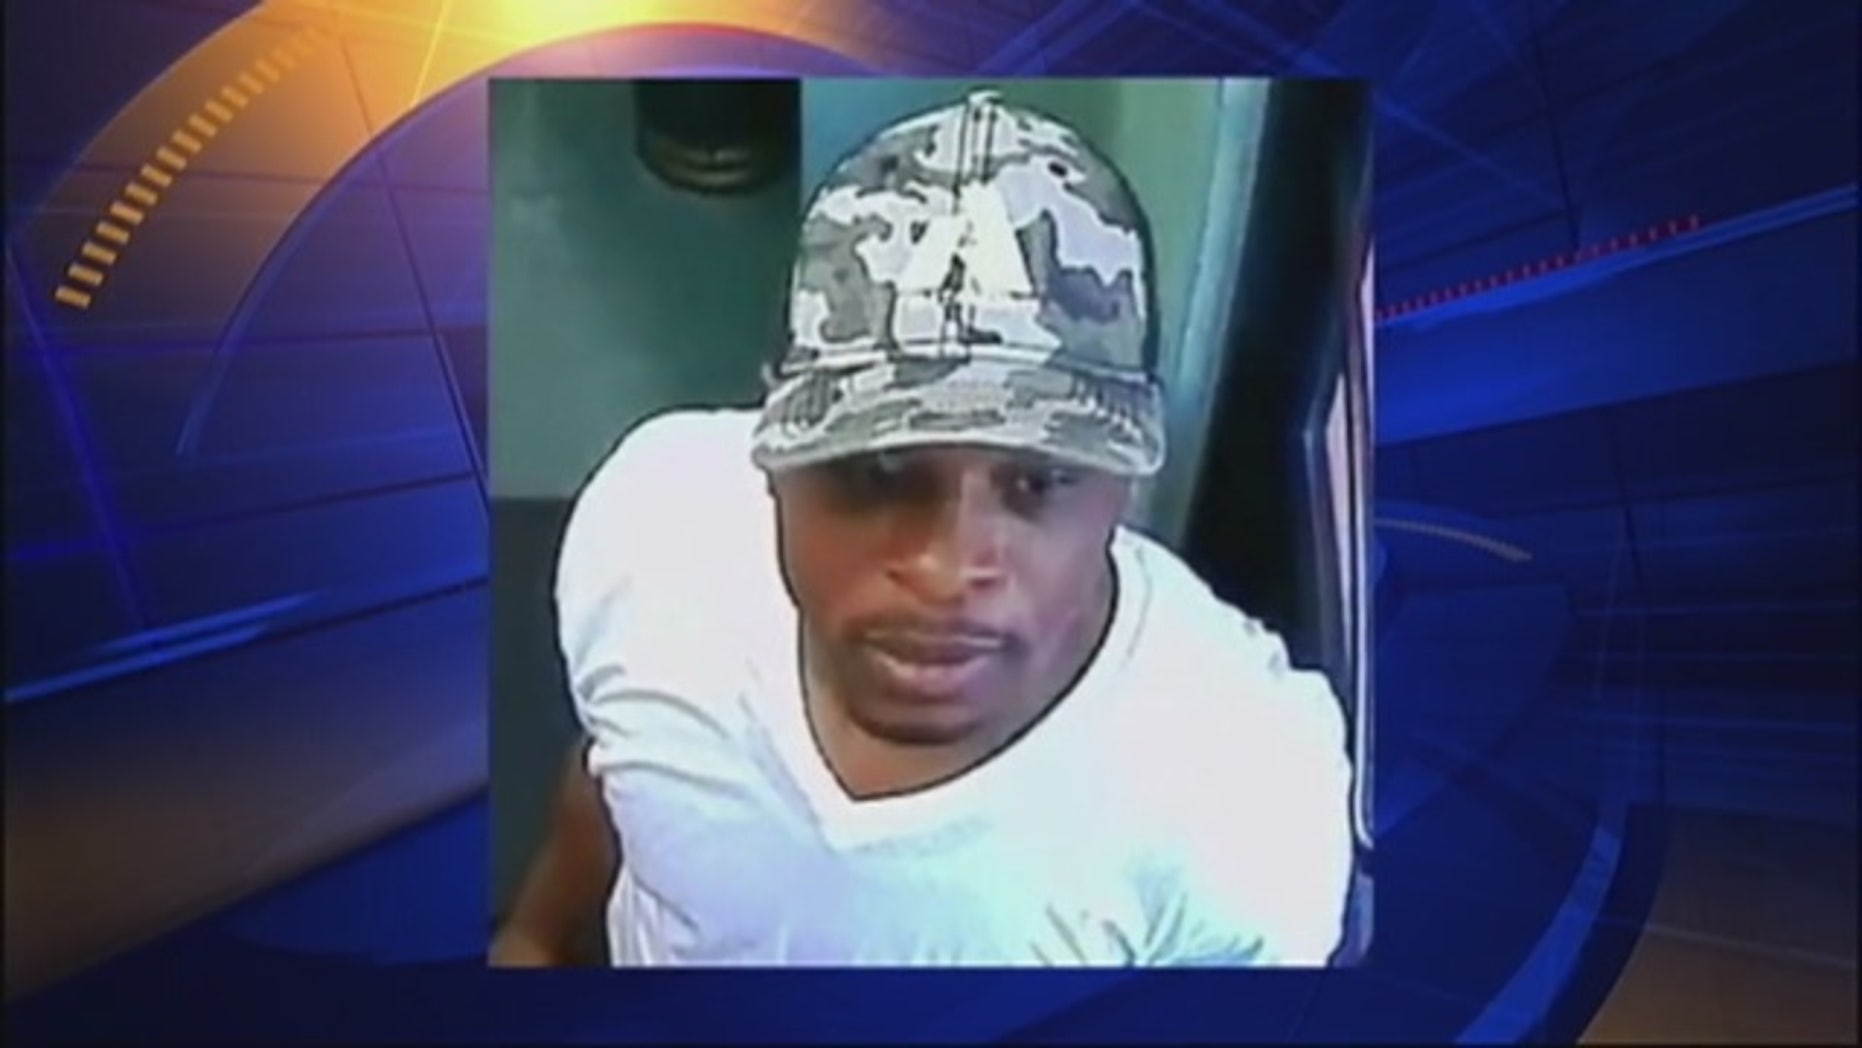 Joseph Danclair, 36, of Brooklyn, N.Y., is seen on surveillance video released by the New York City Police Department.